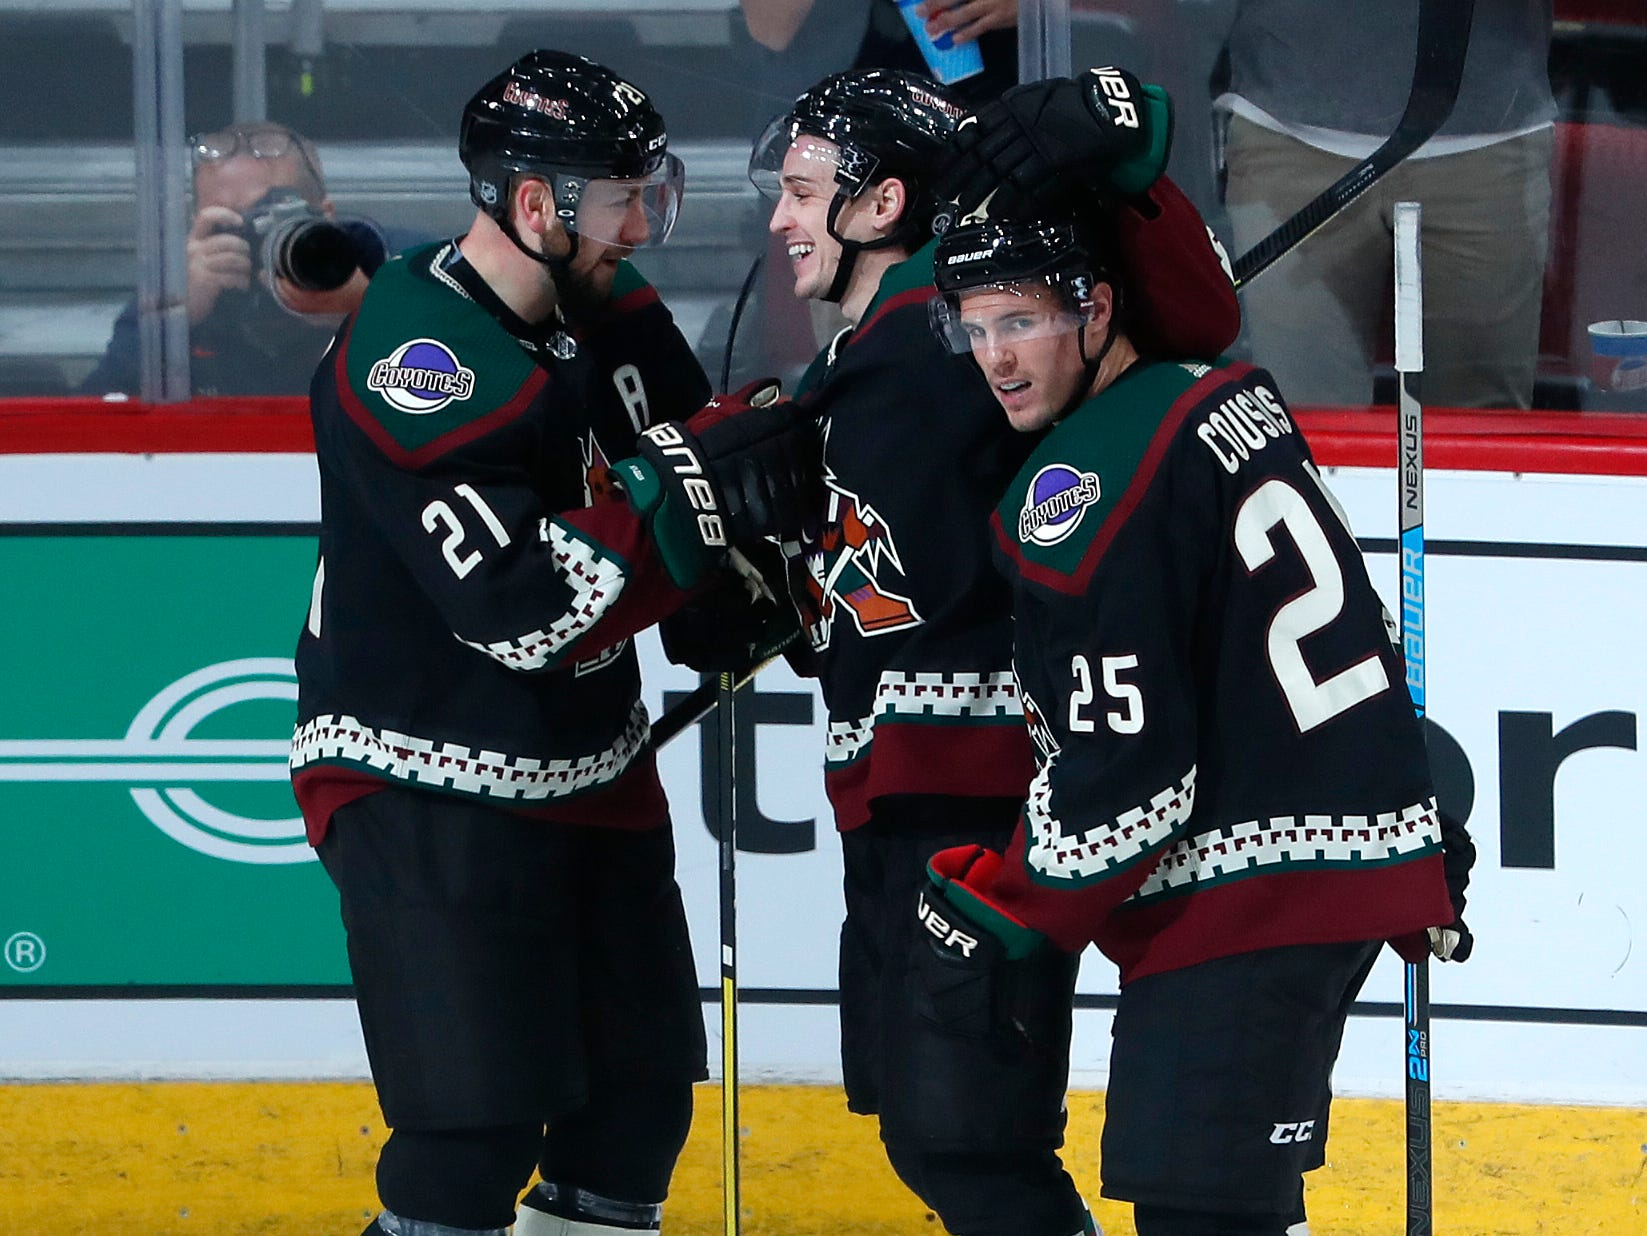 Coyotes' Clayton Keller (center), Derek Stepan (21) and Nick Cousins (25) celebrate a goal against the Blues during the second period at Gila River Arena in Glendale, Ariz. on December 1, 2018.